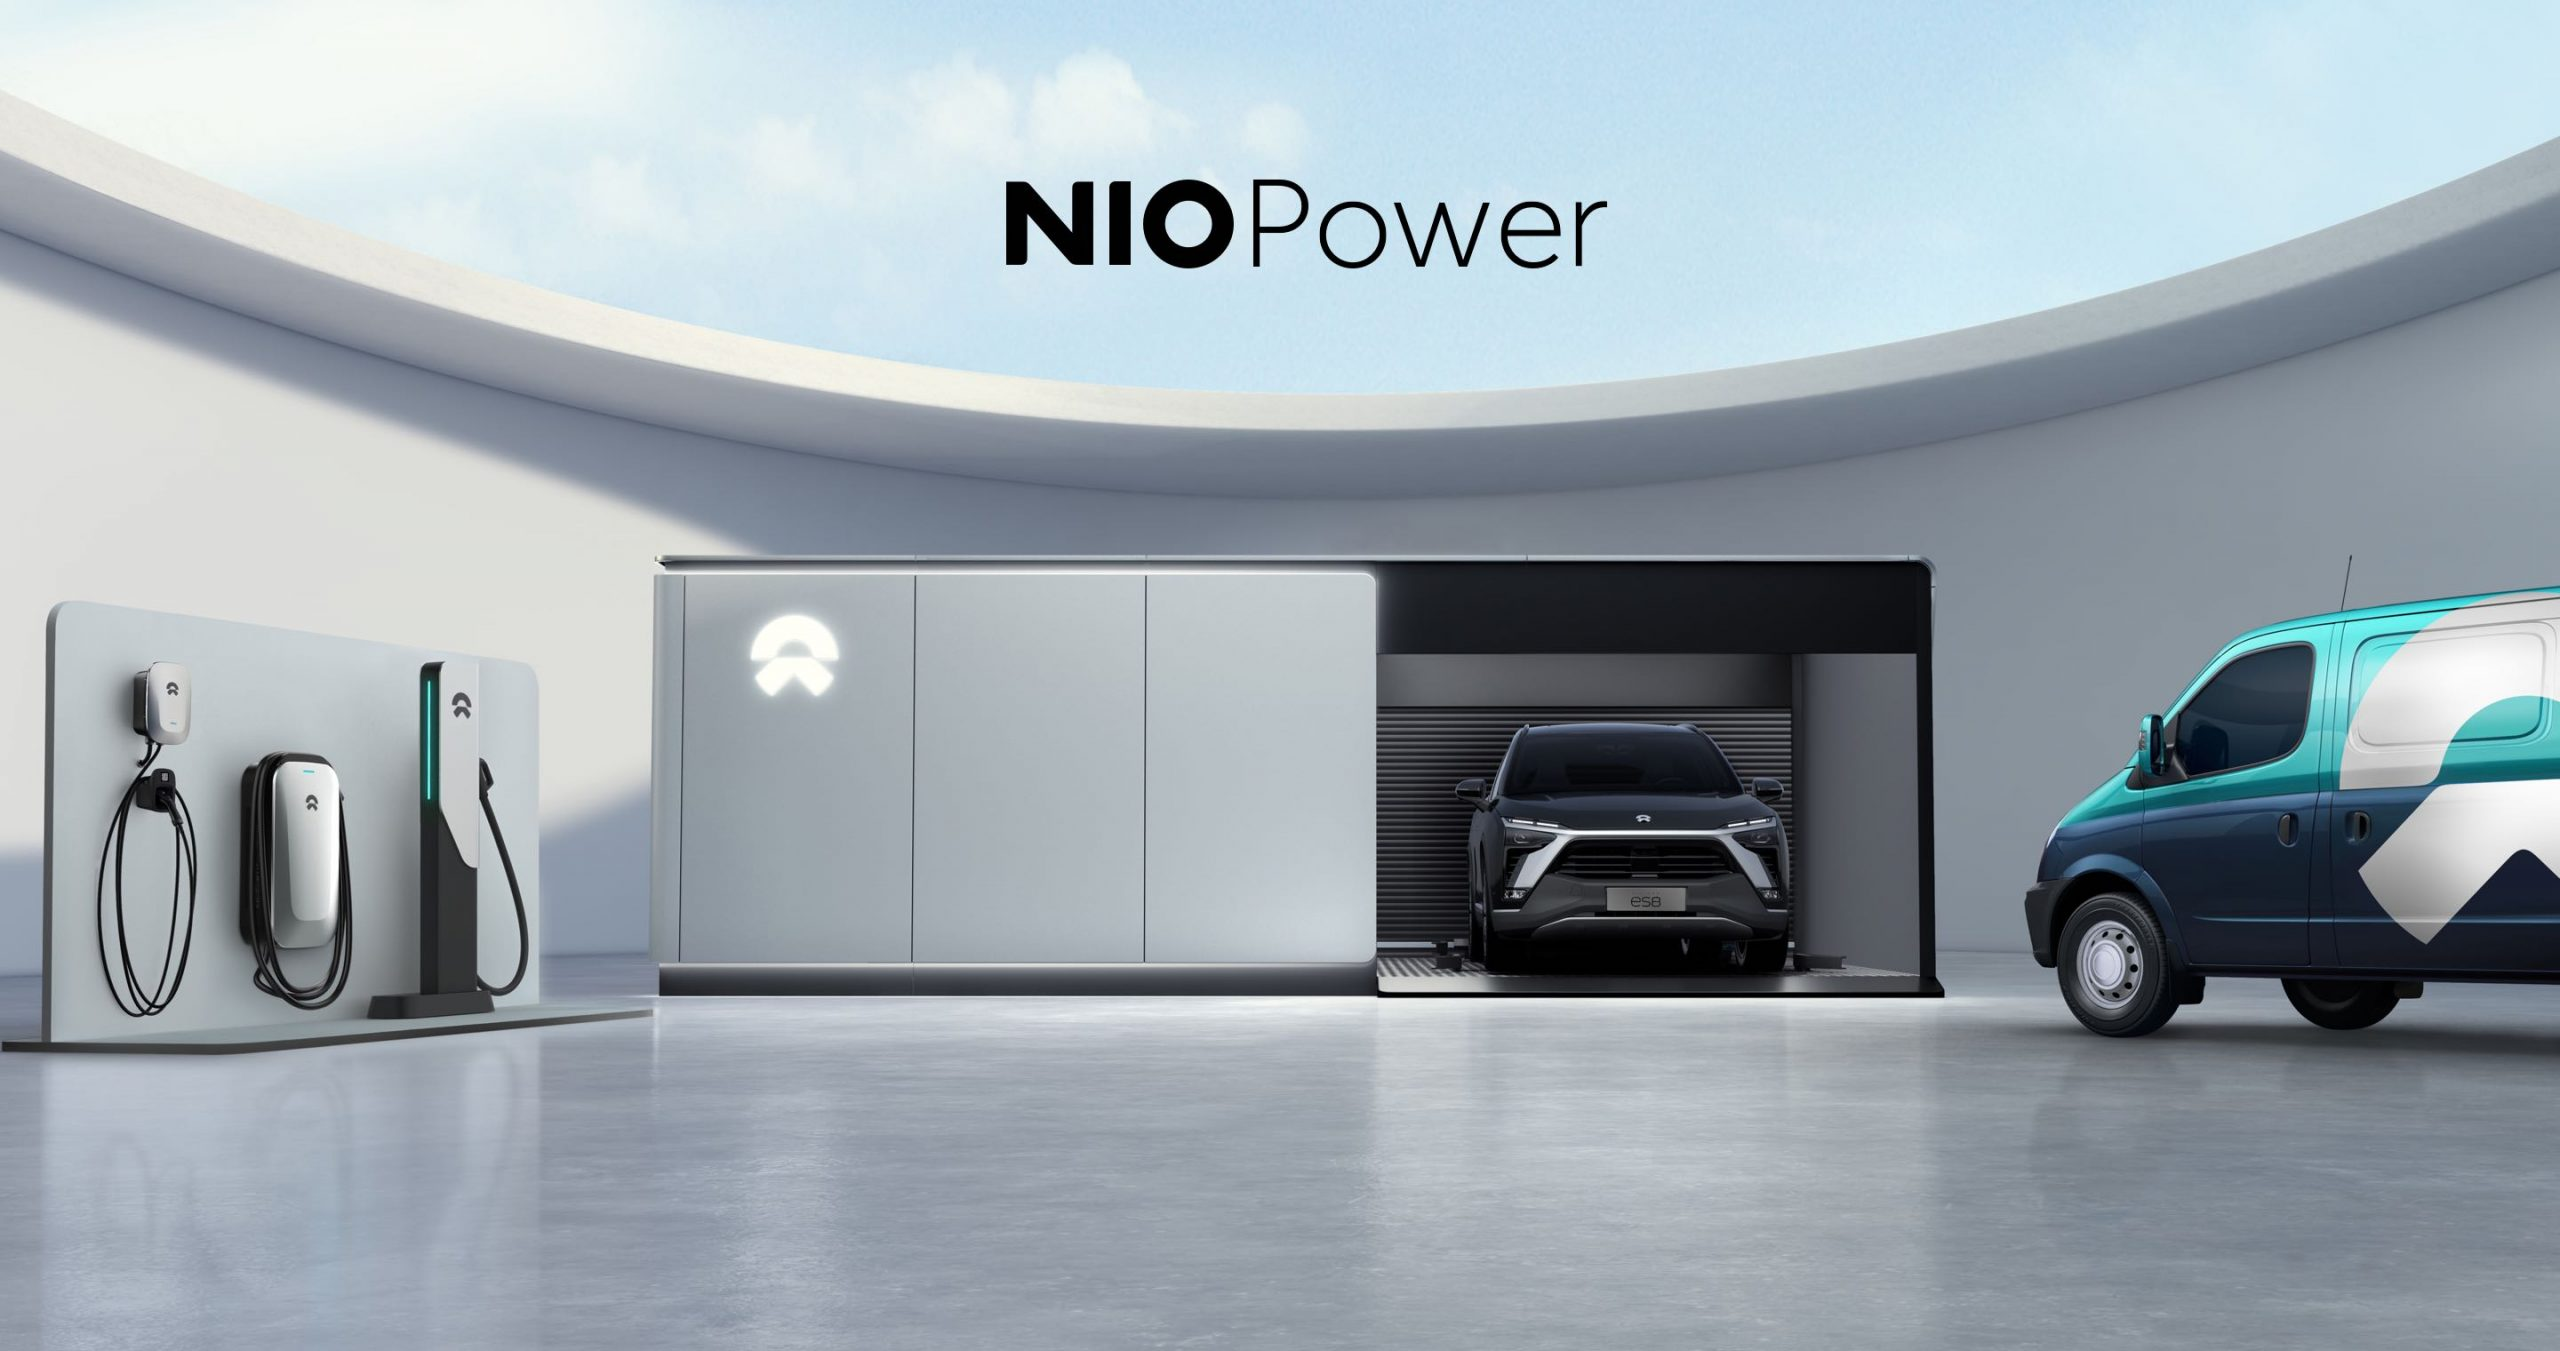 1,000 Battery Swap Station in Oversea Market by 2025, NIO to Promote NIO Power Network